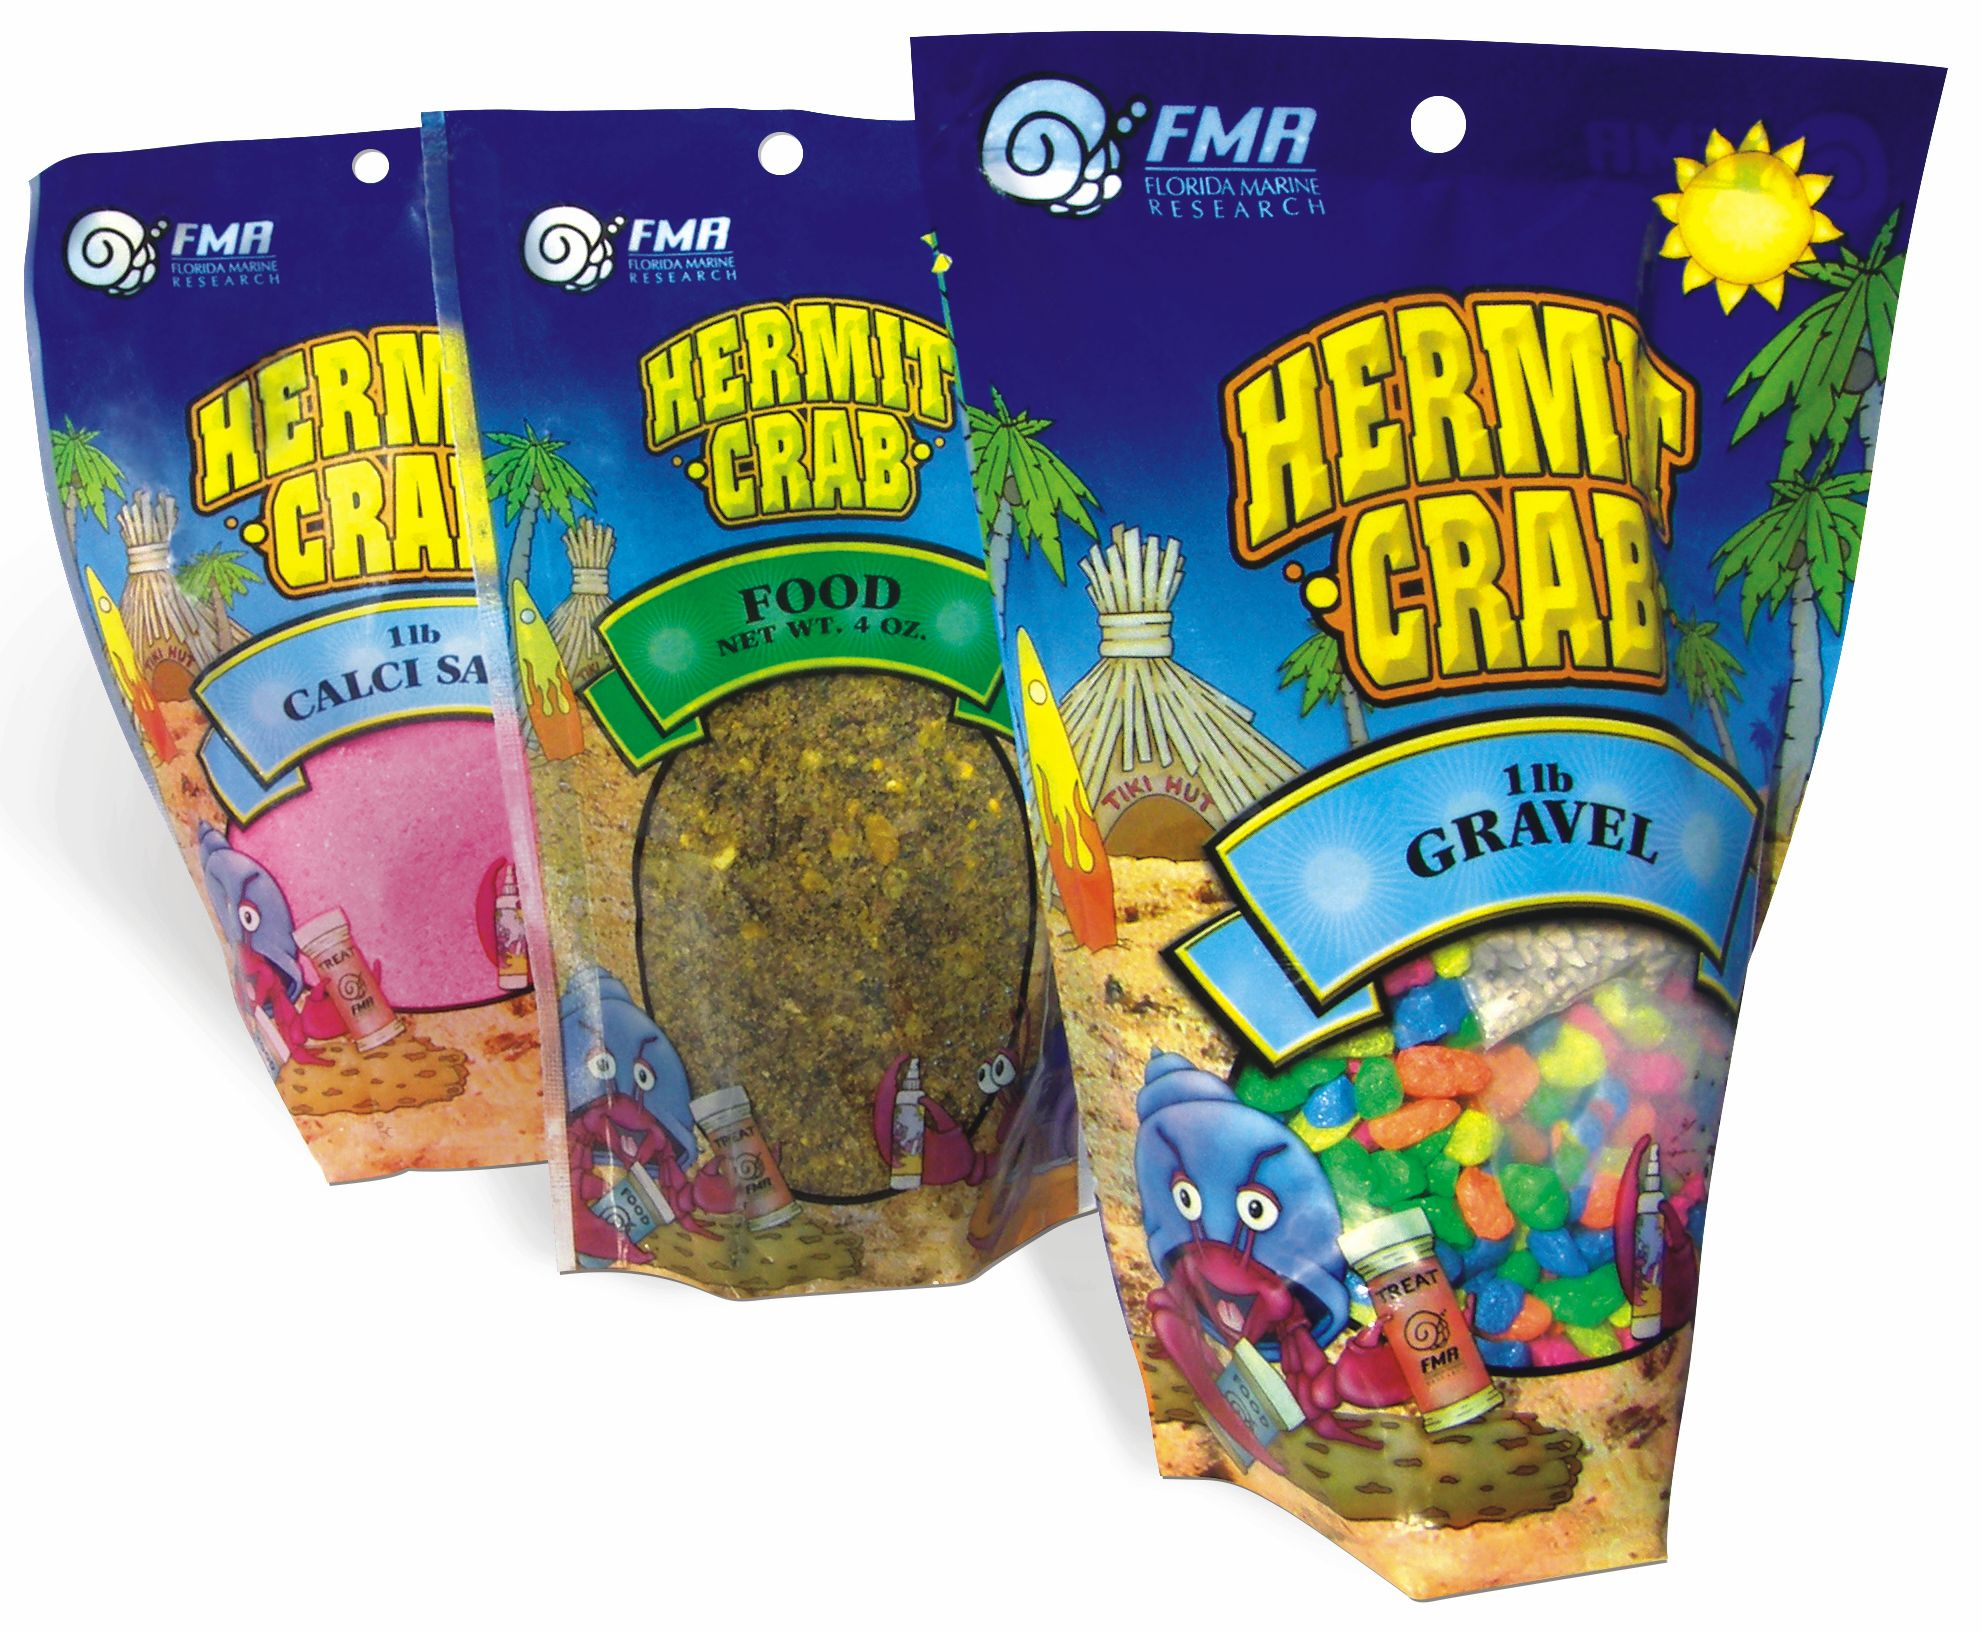 Hermit crab SidePouch bags